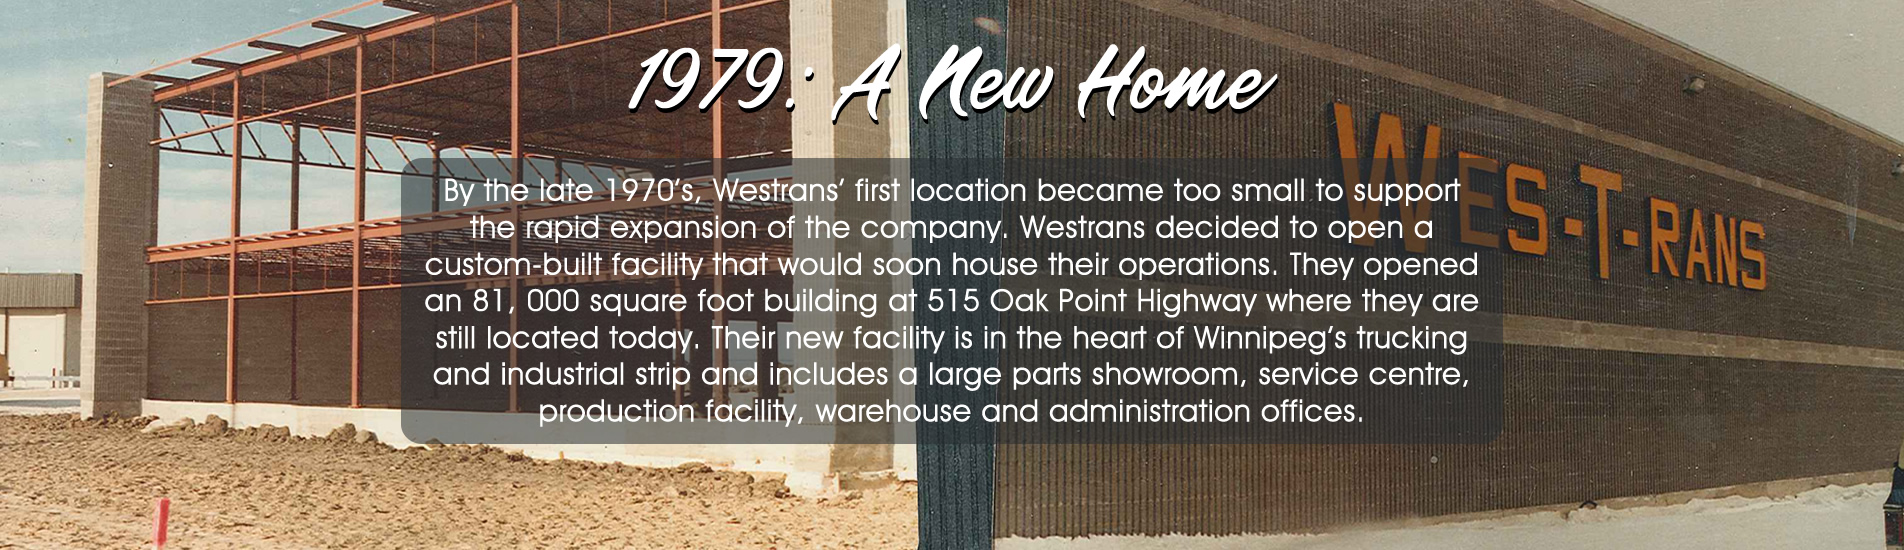 westrans-a-new-home-1981